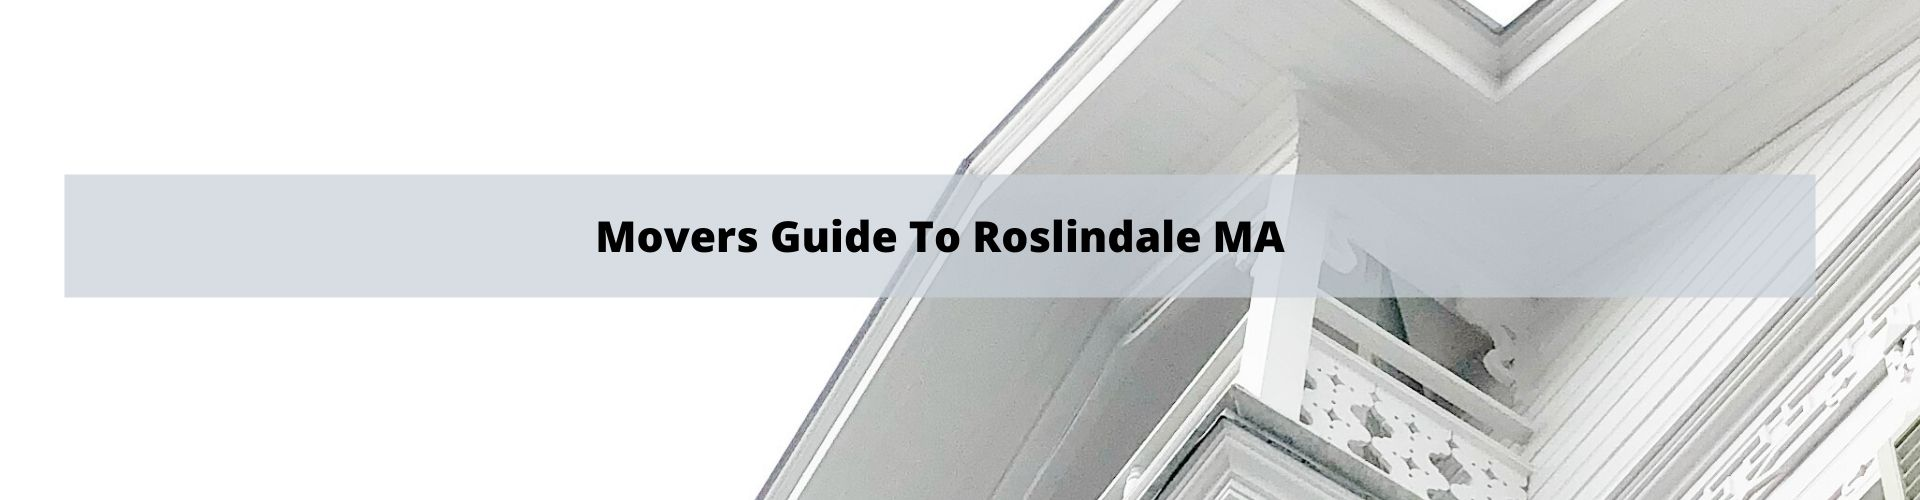 Roslindale MA Mover's Guide